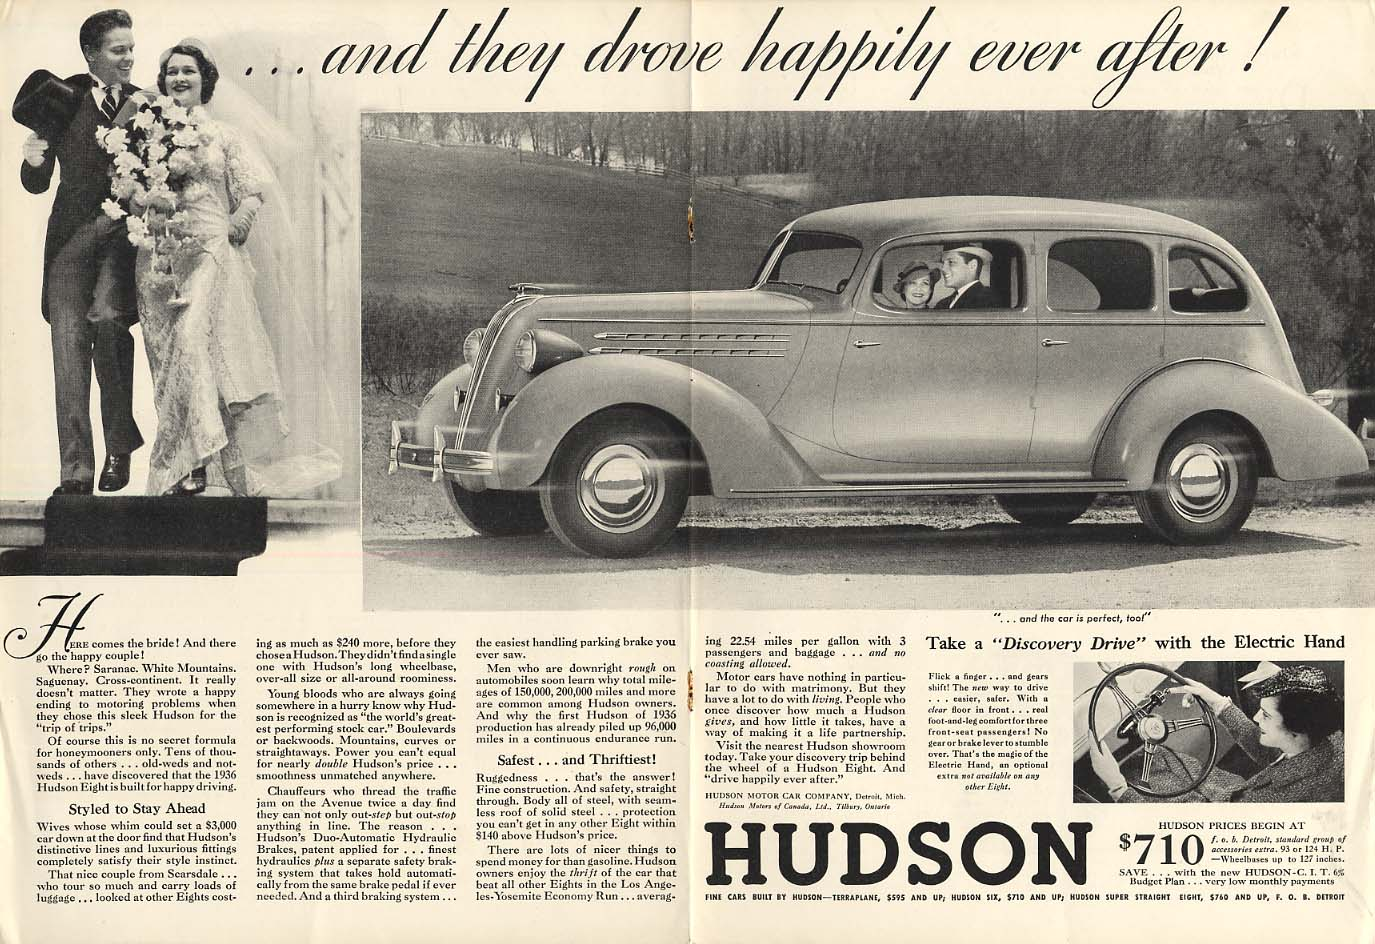 And they drove happily ever after! Hudson 4-door sedan ad 1936 NY